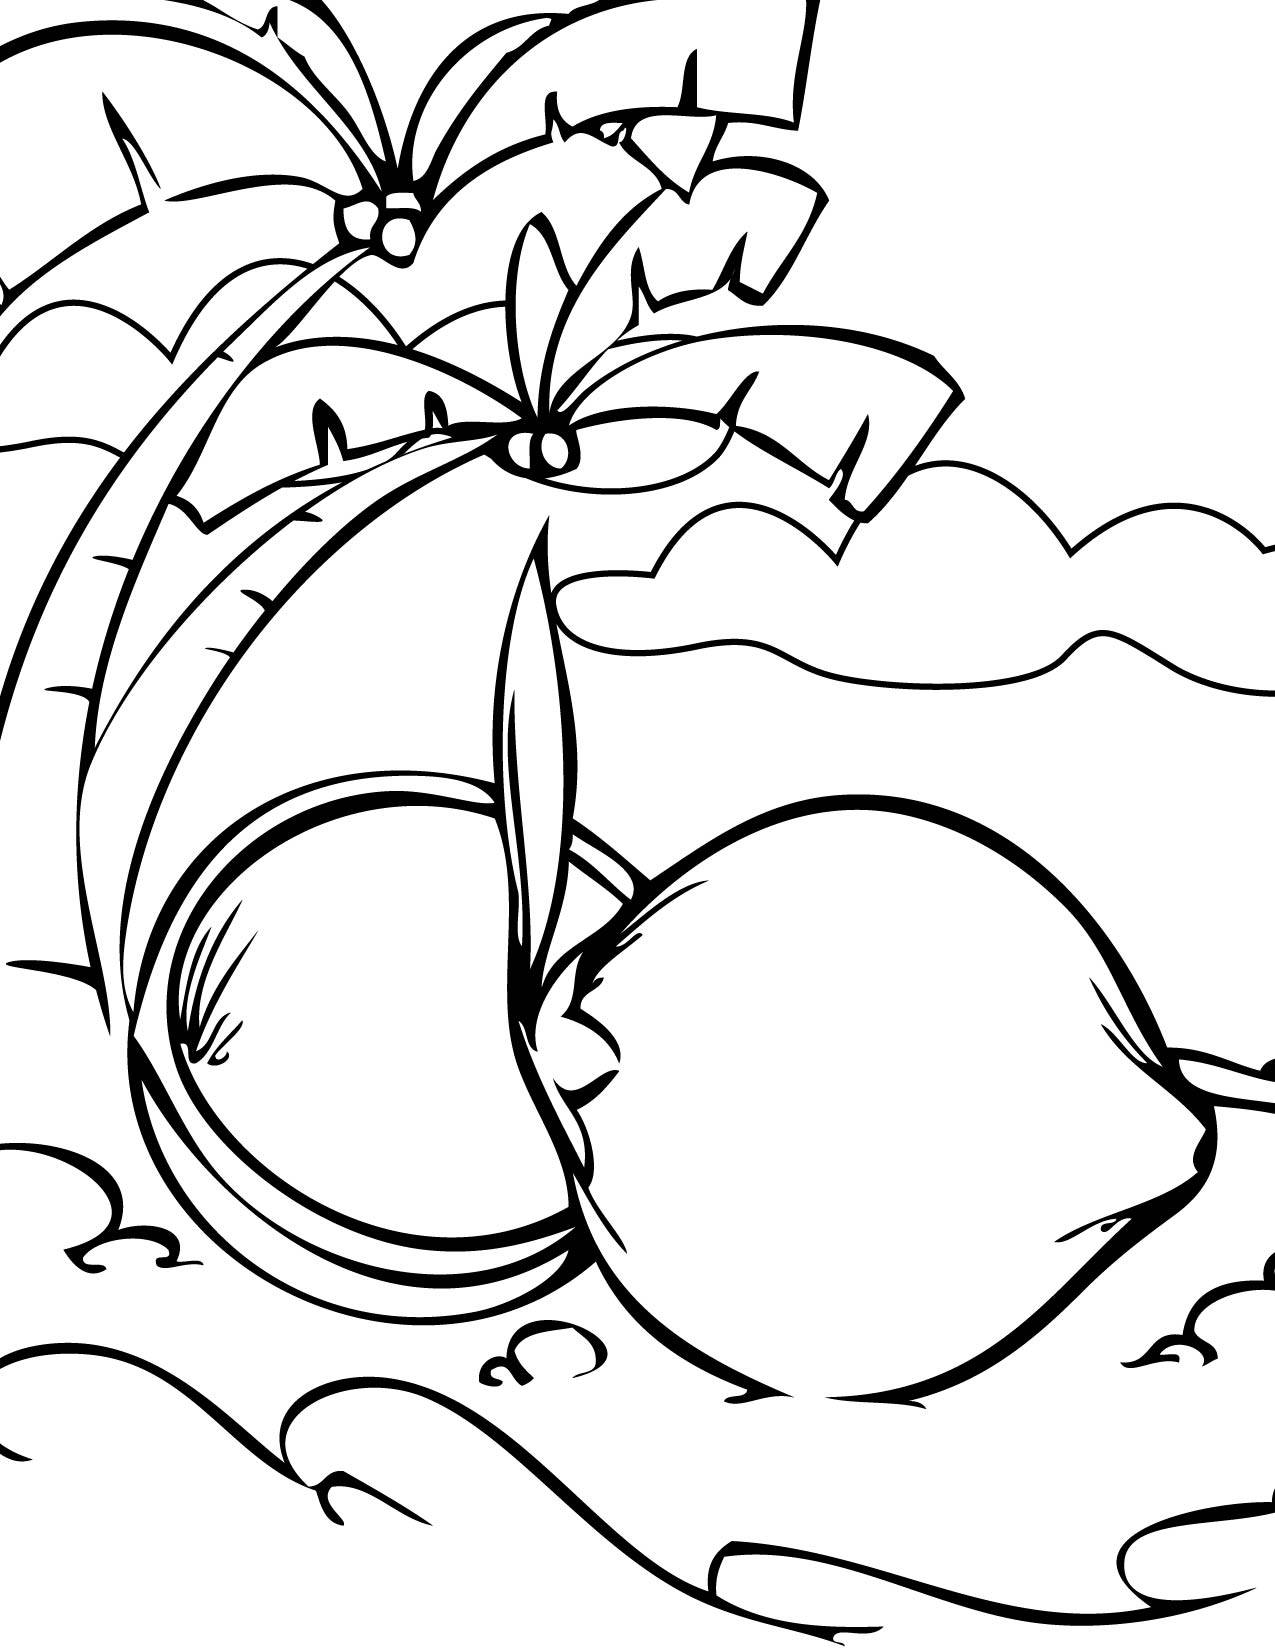 coconut coloring page handipoints